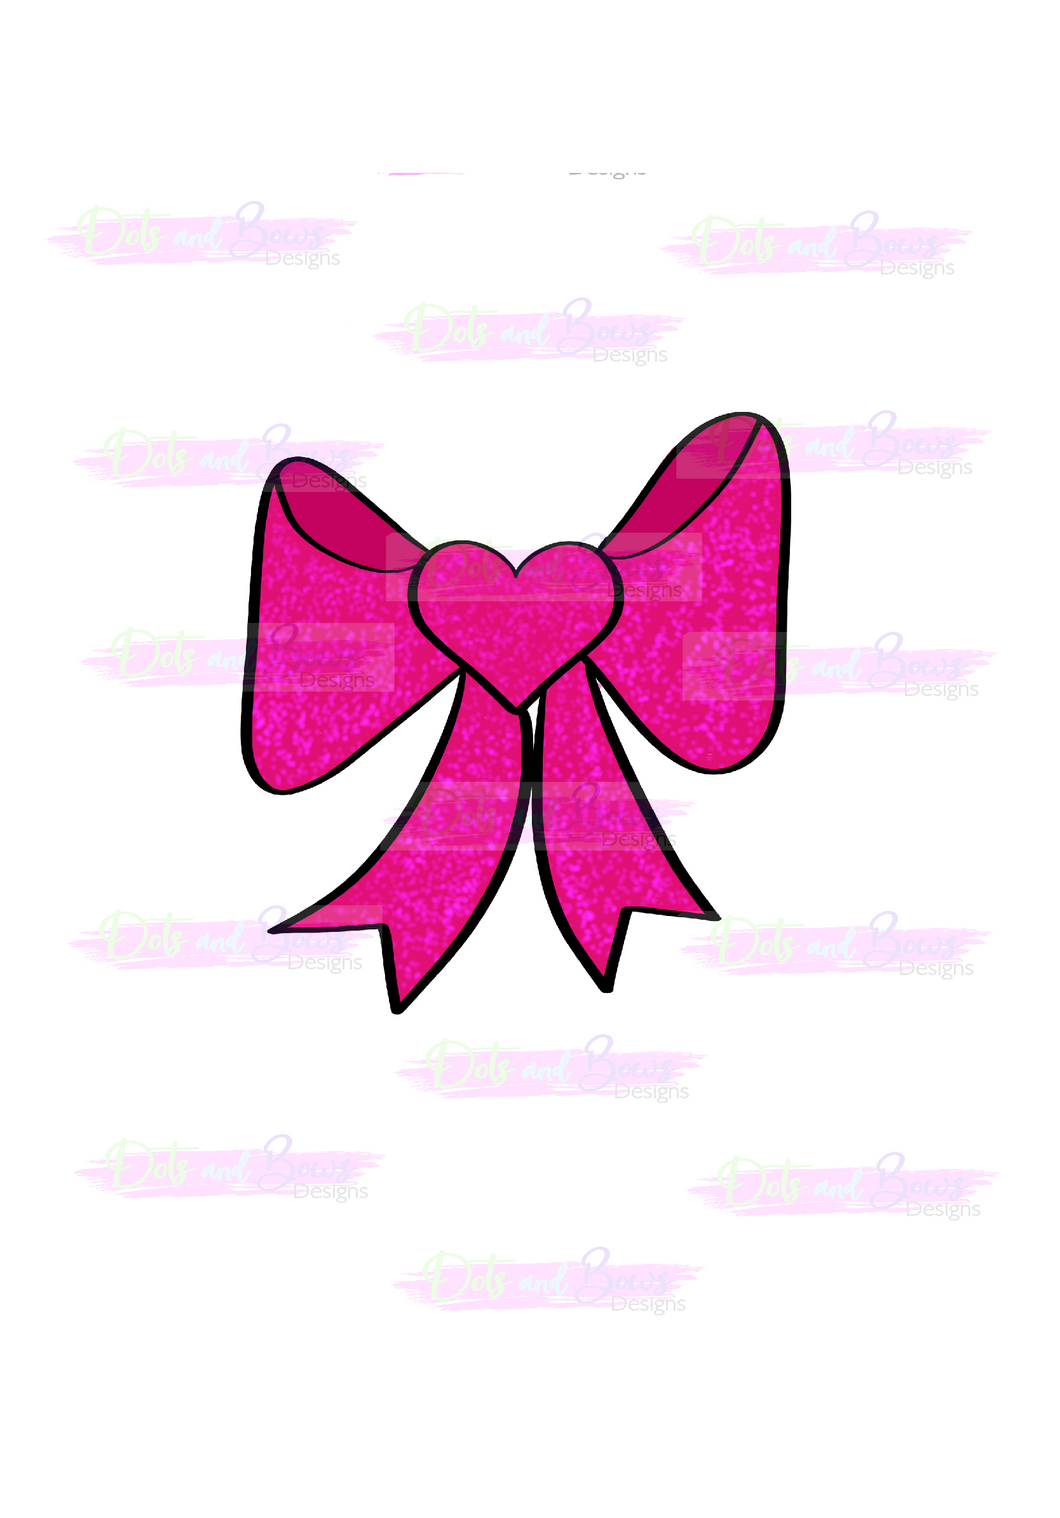 Bow Cutter - Dots and Bows Designs